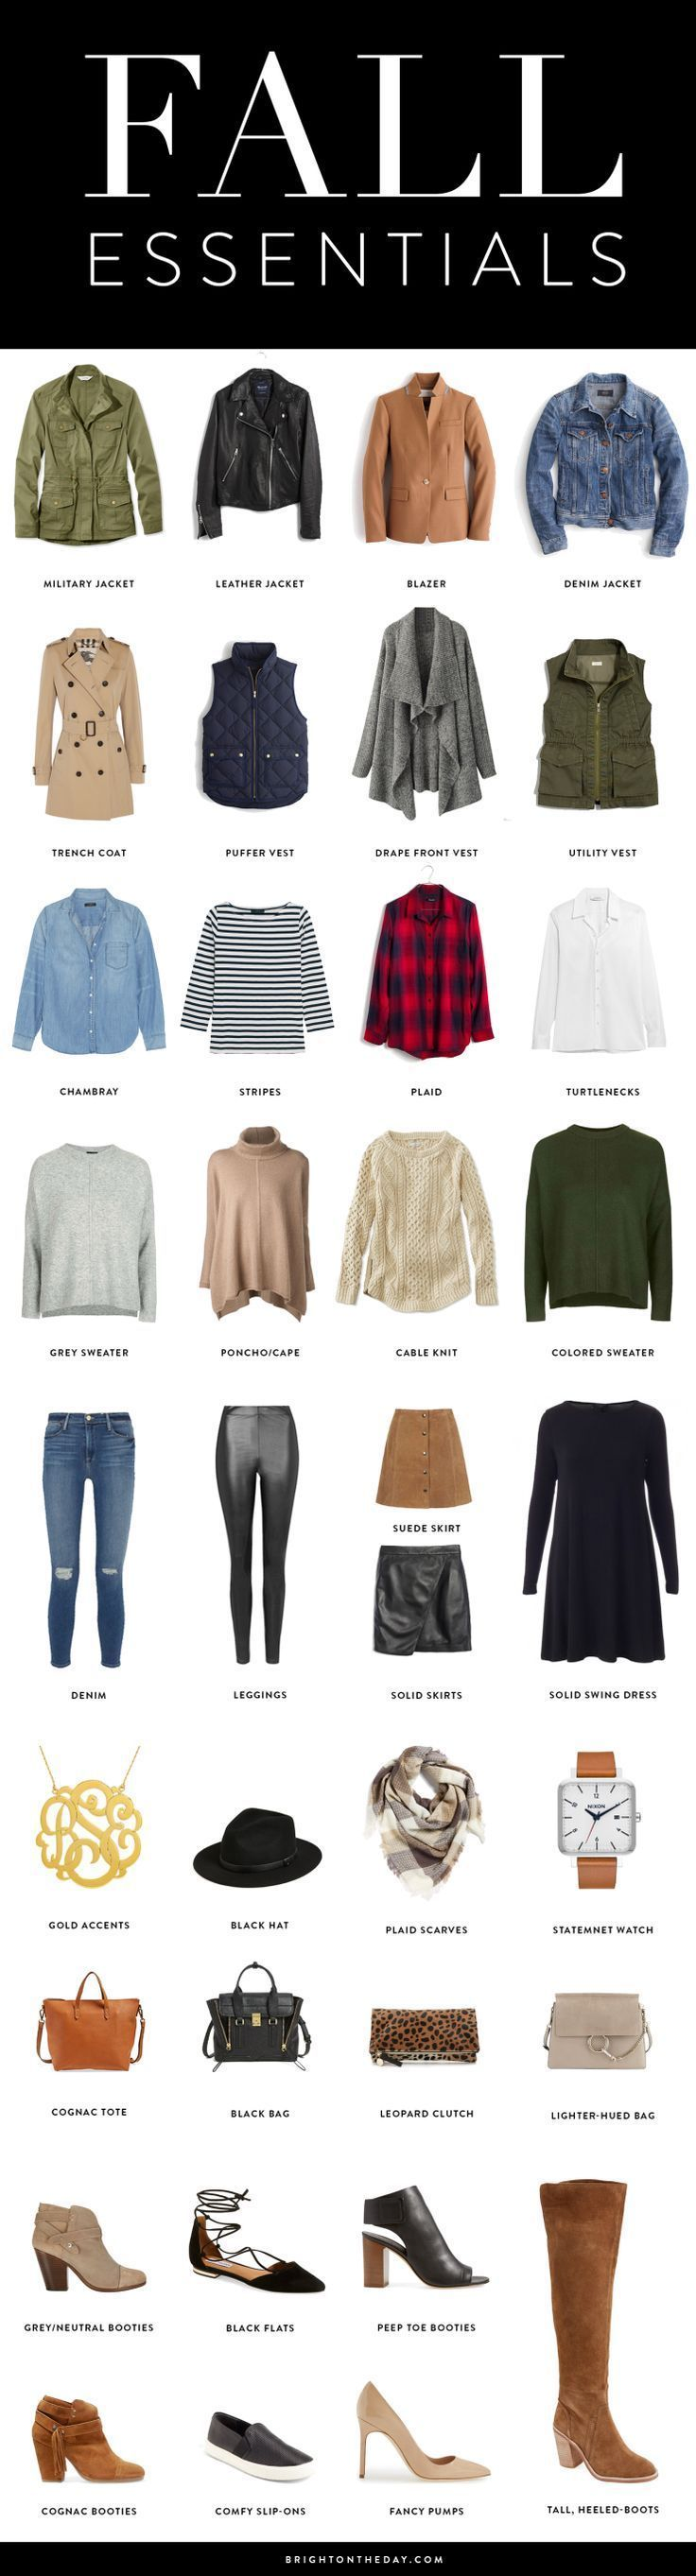 fall must haves, fall essentials, fall capsule wardrobe, fall basics for cute fall outfits #wardrobebasicsforfall